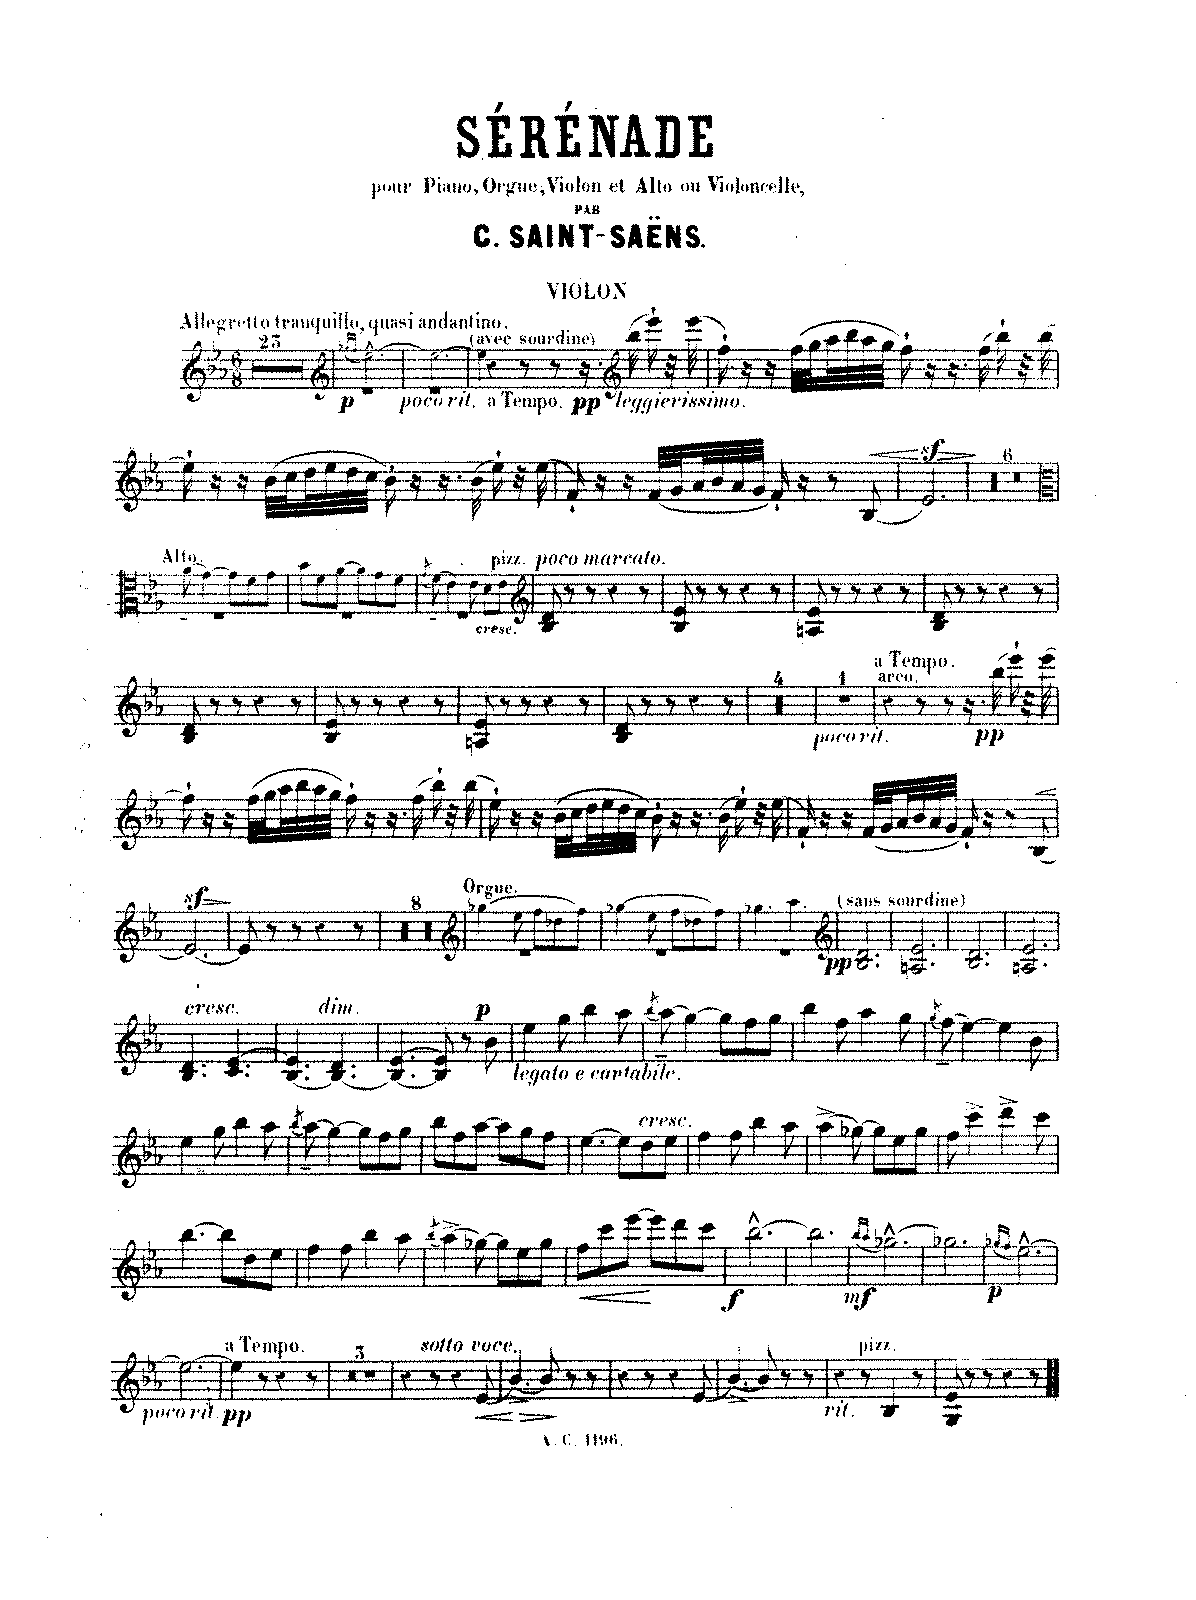 PMLP69041-Saint-Saëns - Sérénade, Op. 15 (piano, organ, violin and viola or cello).pdf